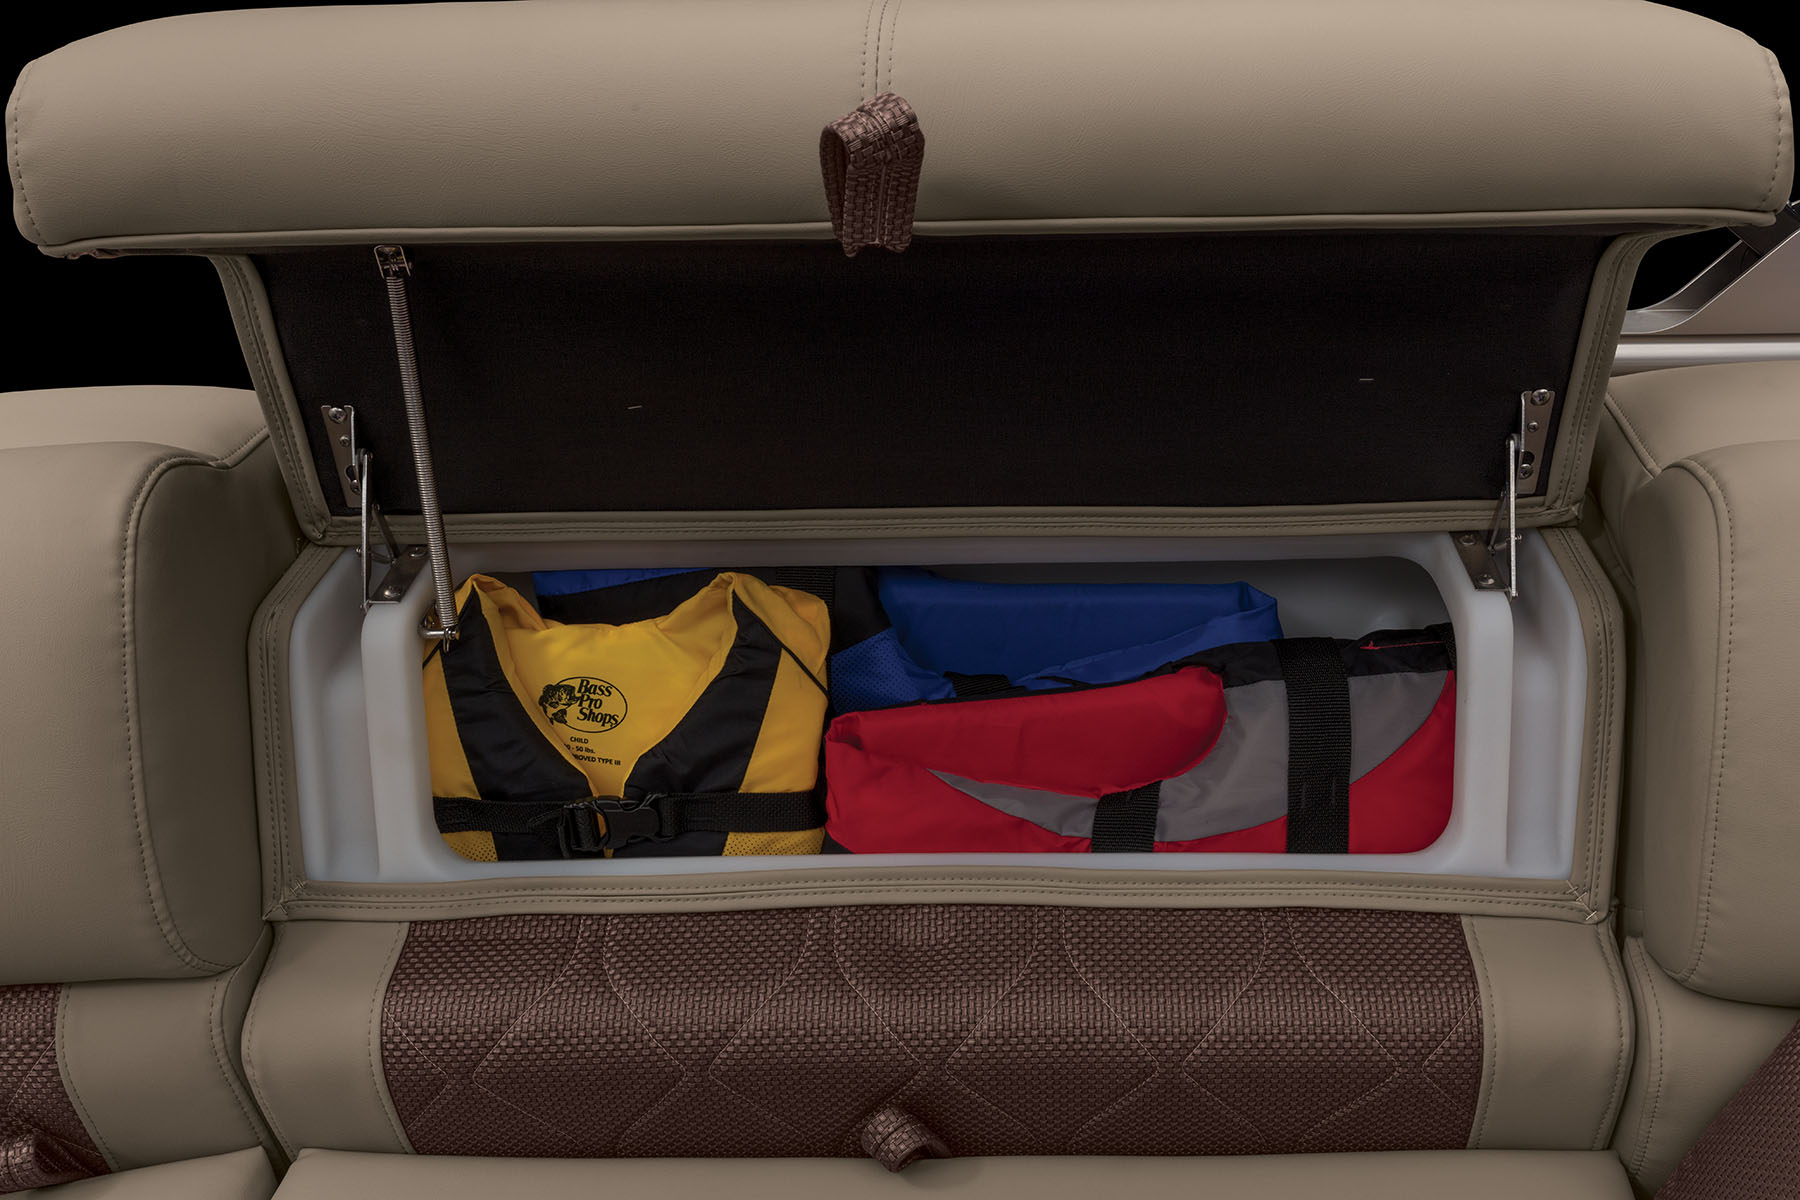 Stow More compartment